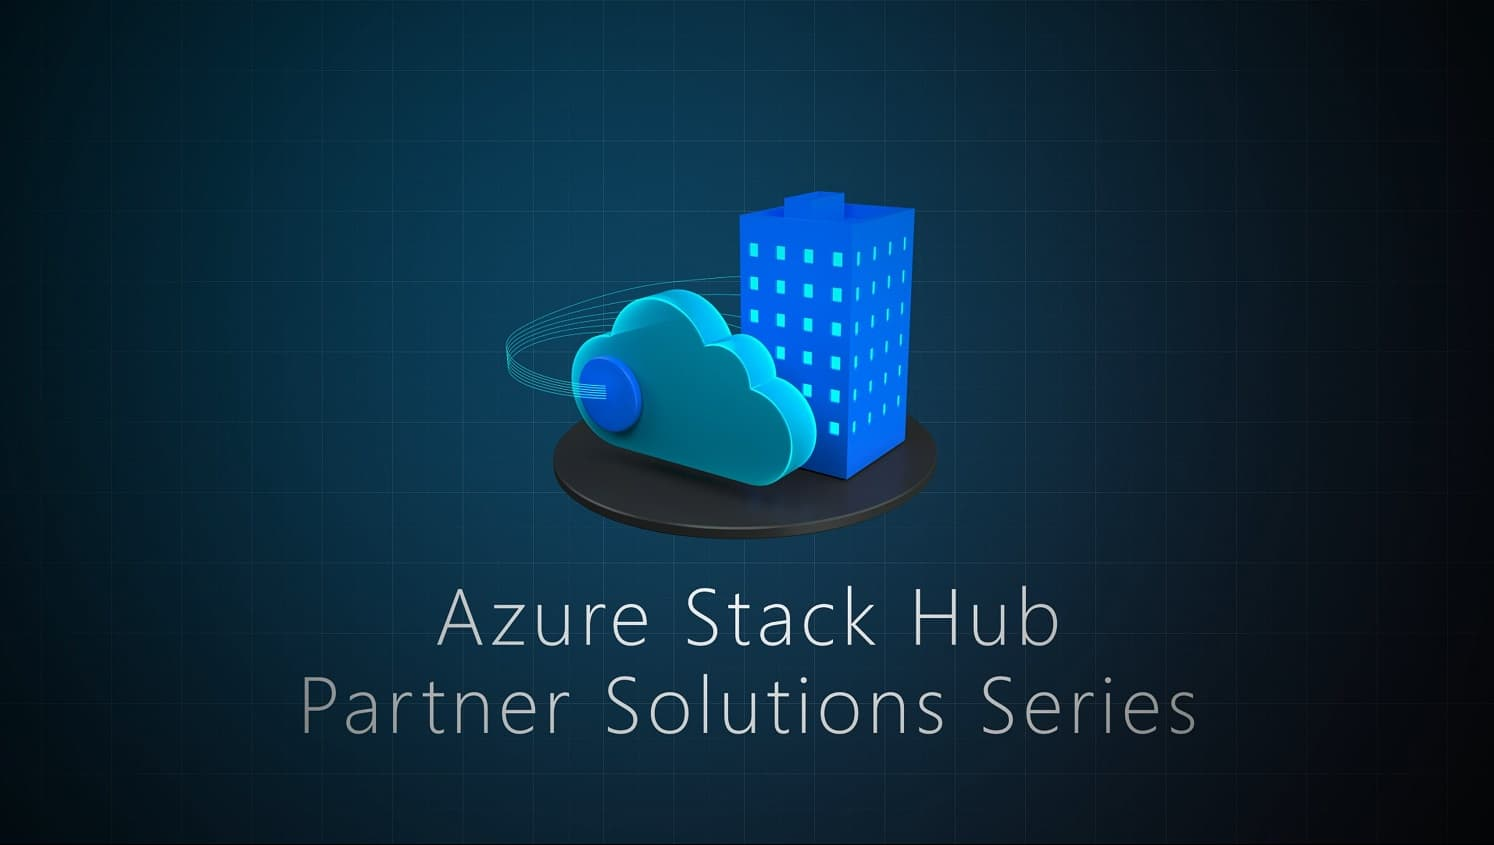 Azure Stack Hub Partner Solutions Video Series